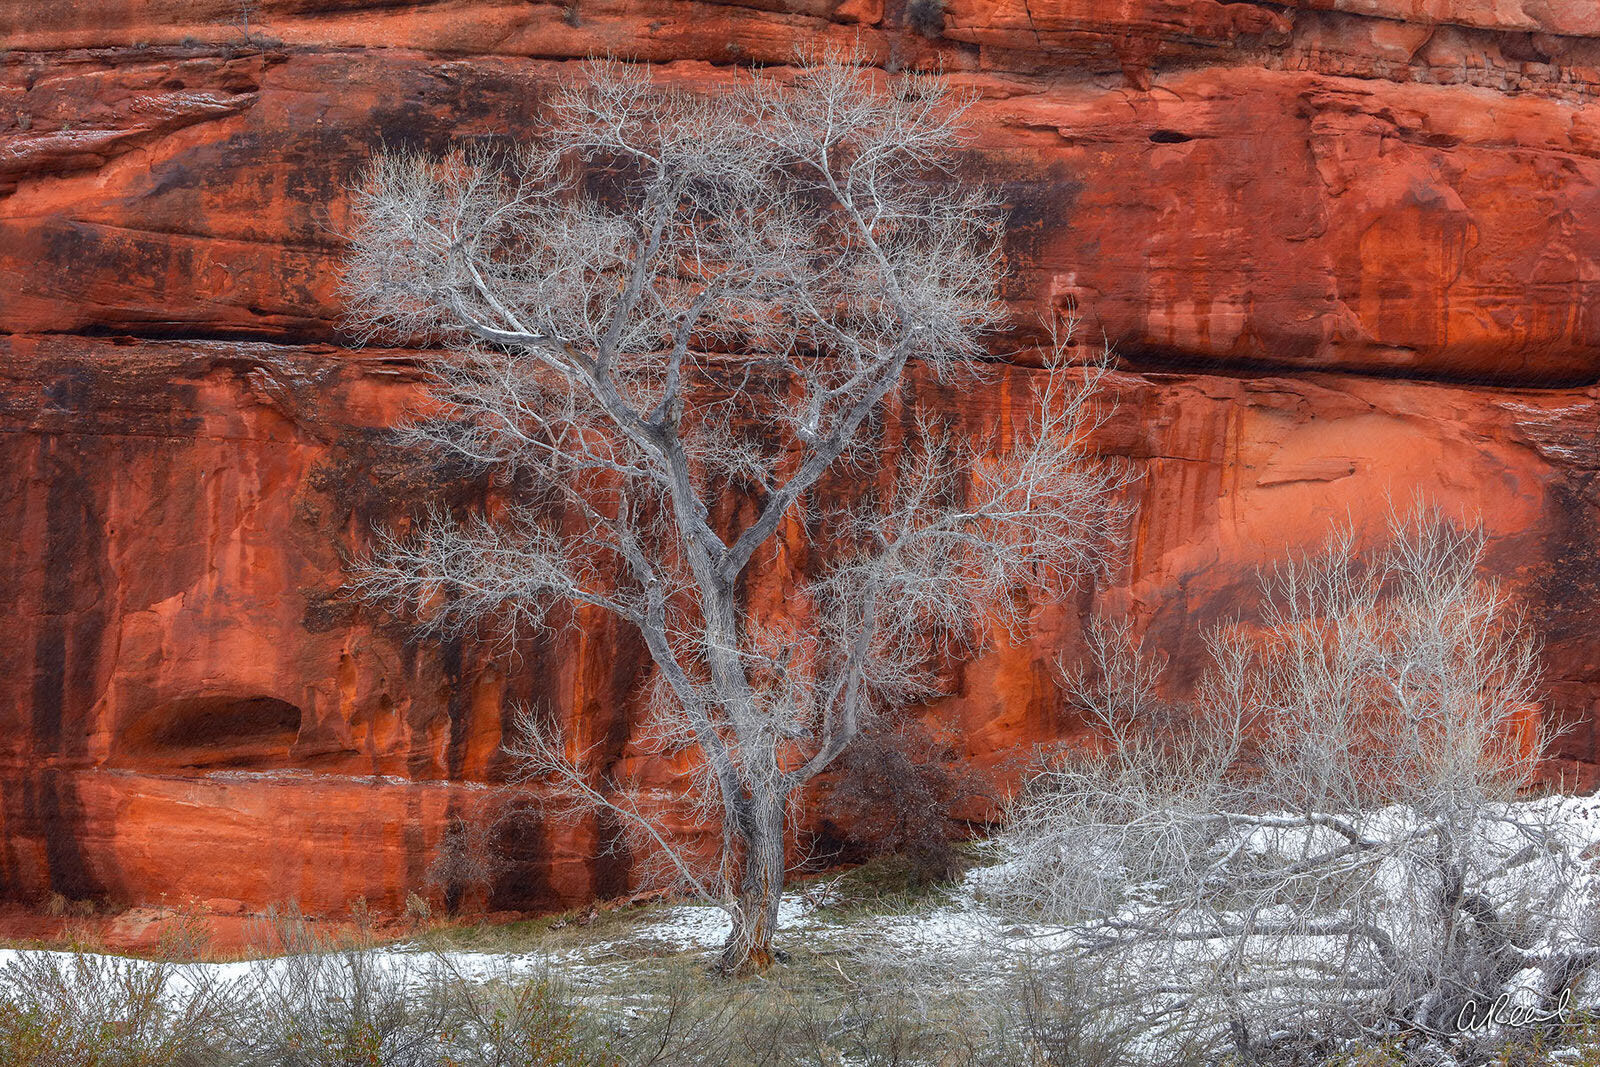 A photograph of a lone cottonwood tree in winter against a red canyon wall.